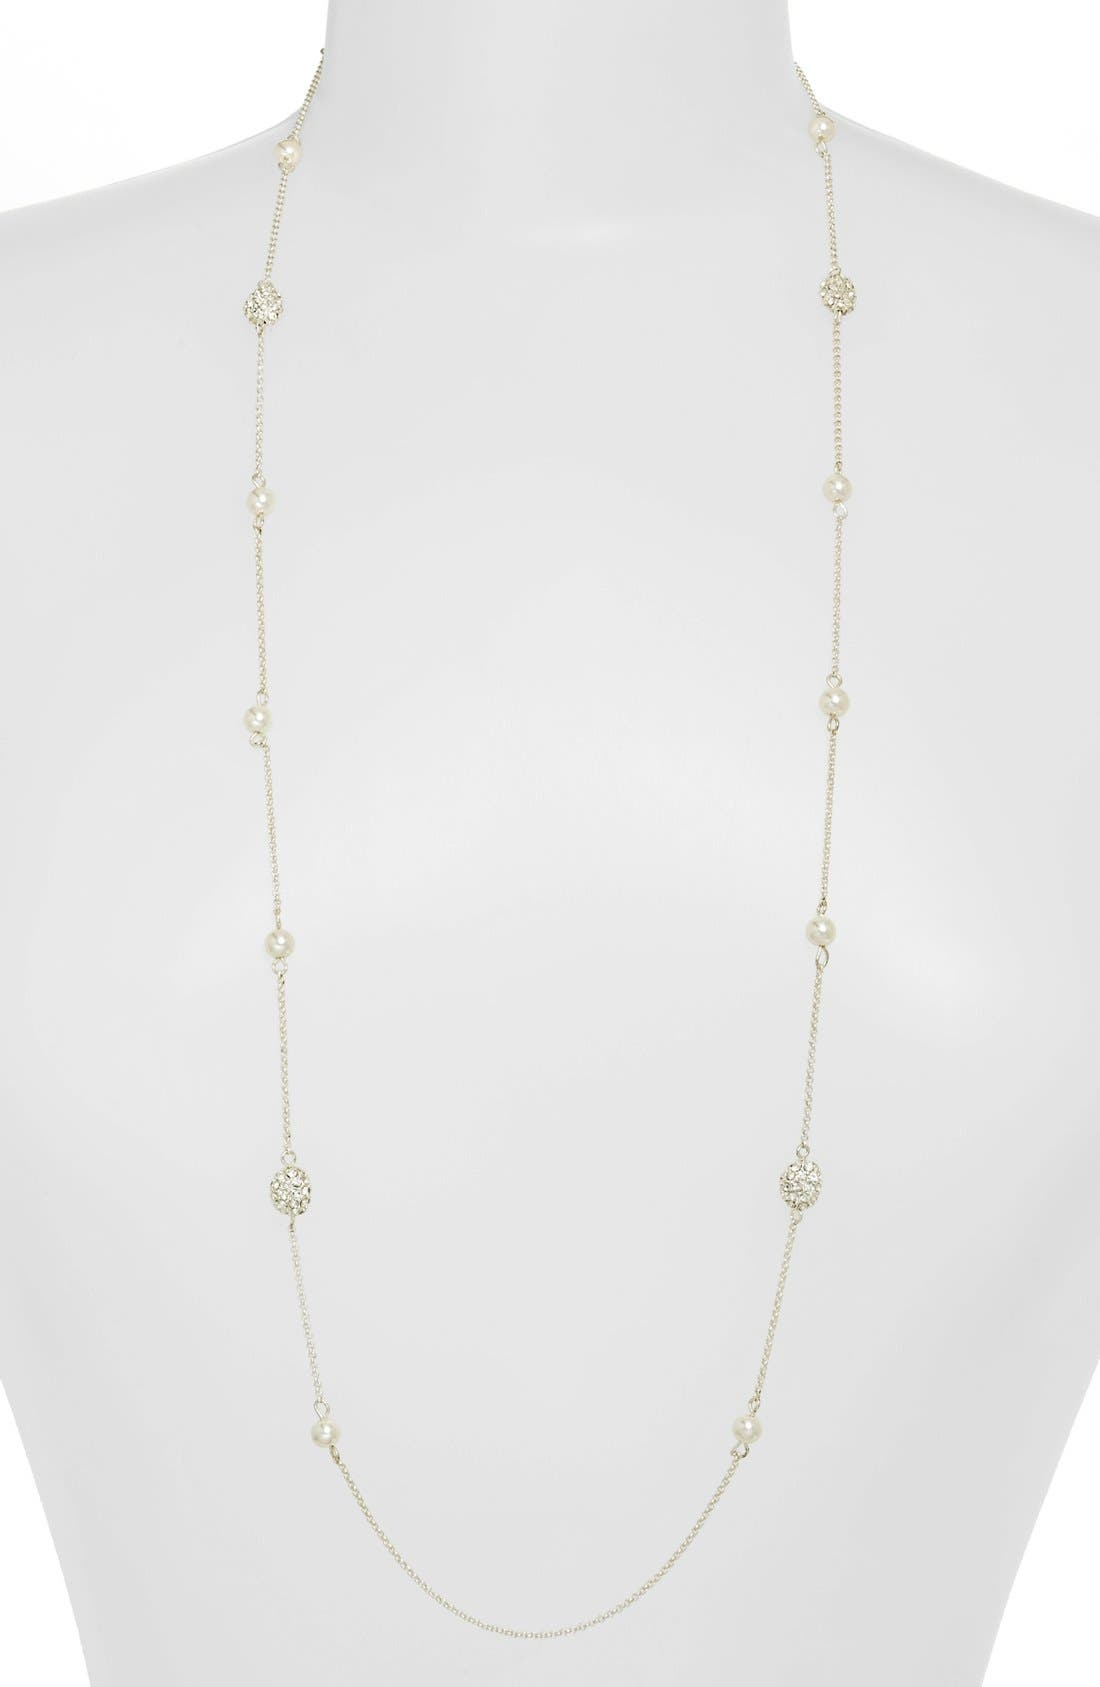 Alternate Image 1 Selected - Lauren Ralph Lauren Long Glass Pearl & Pavé Bead Illusion Necklace